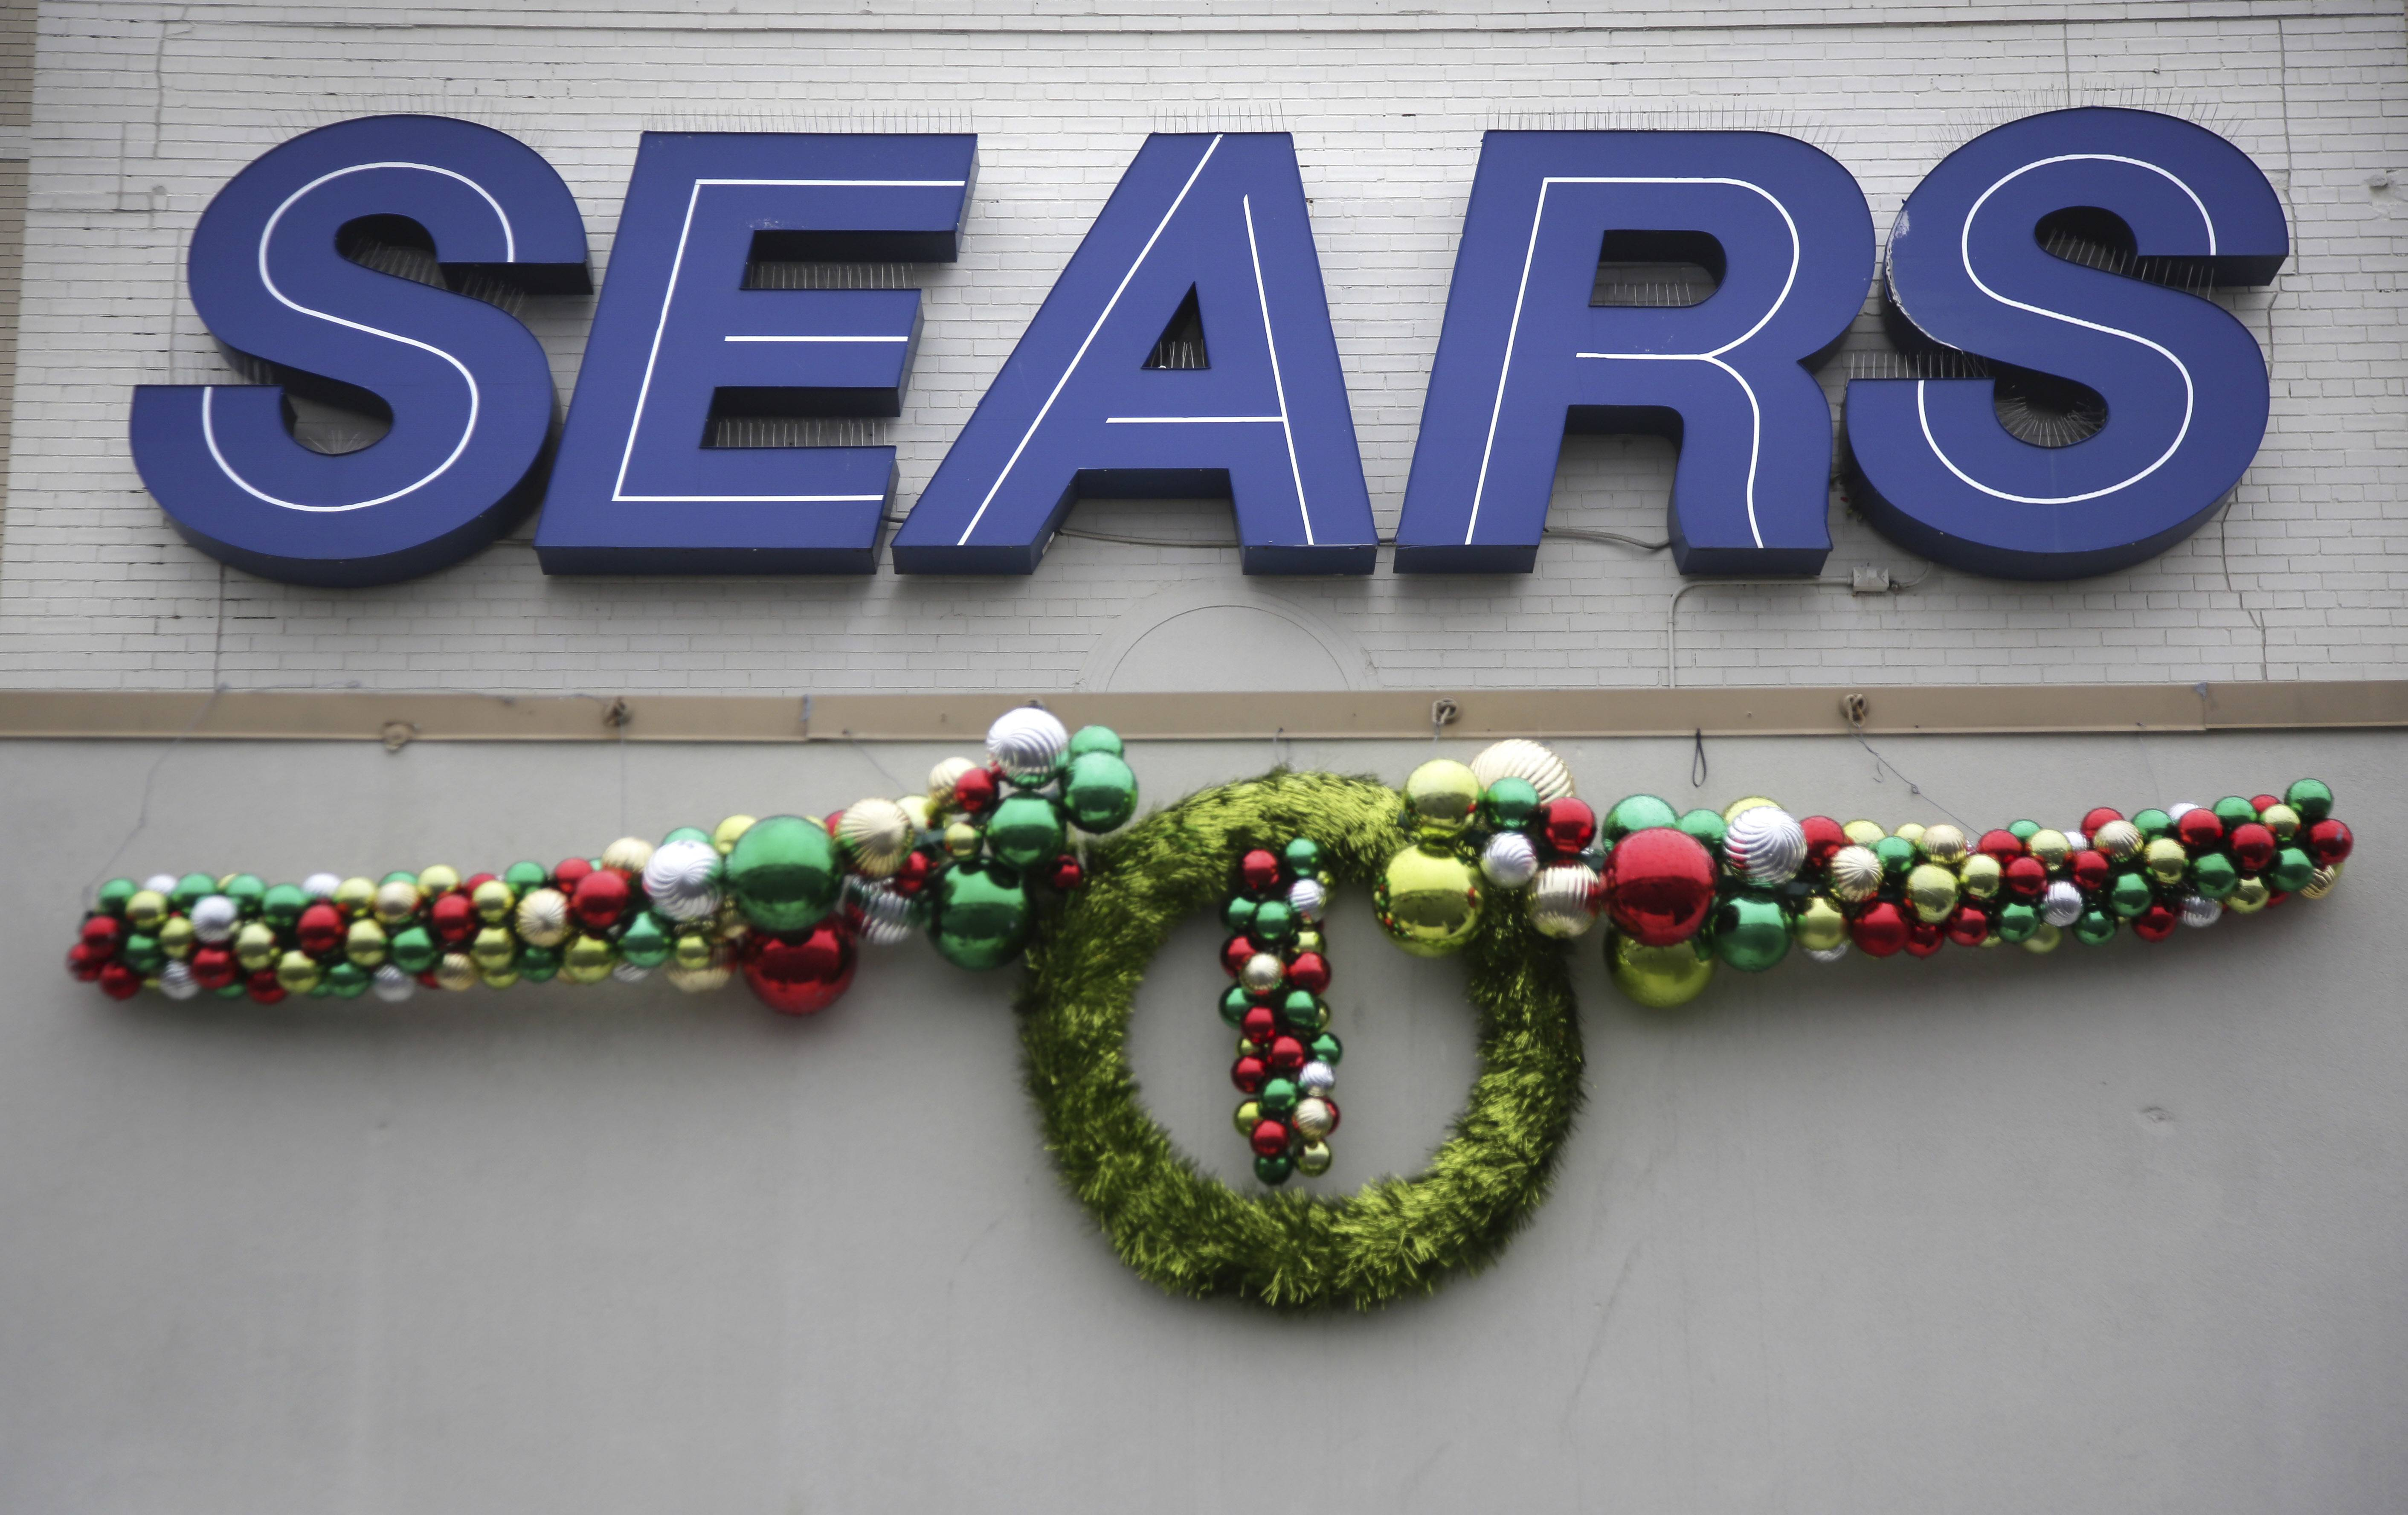 Some Sears Holding partners have come out in support of a proposal by Eddie Lampert's hedge fund that would avoid liquidating the department-store chain and keep stores open, according to a court filing.